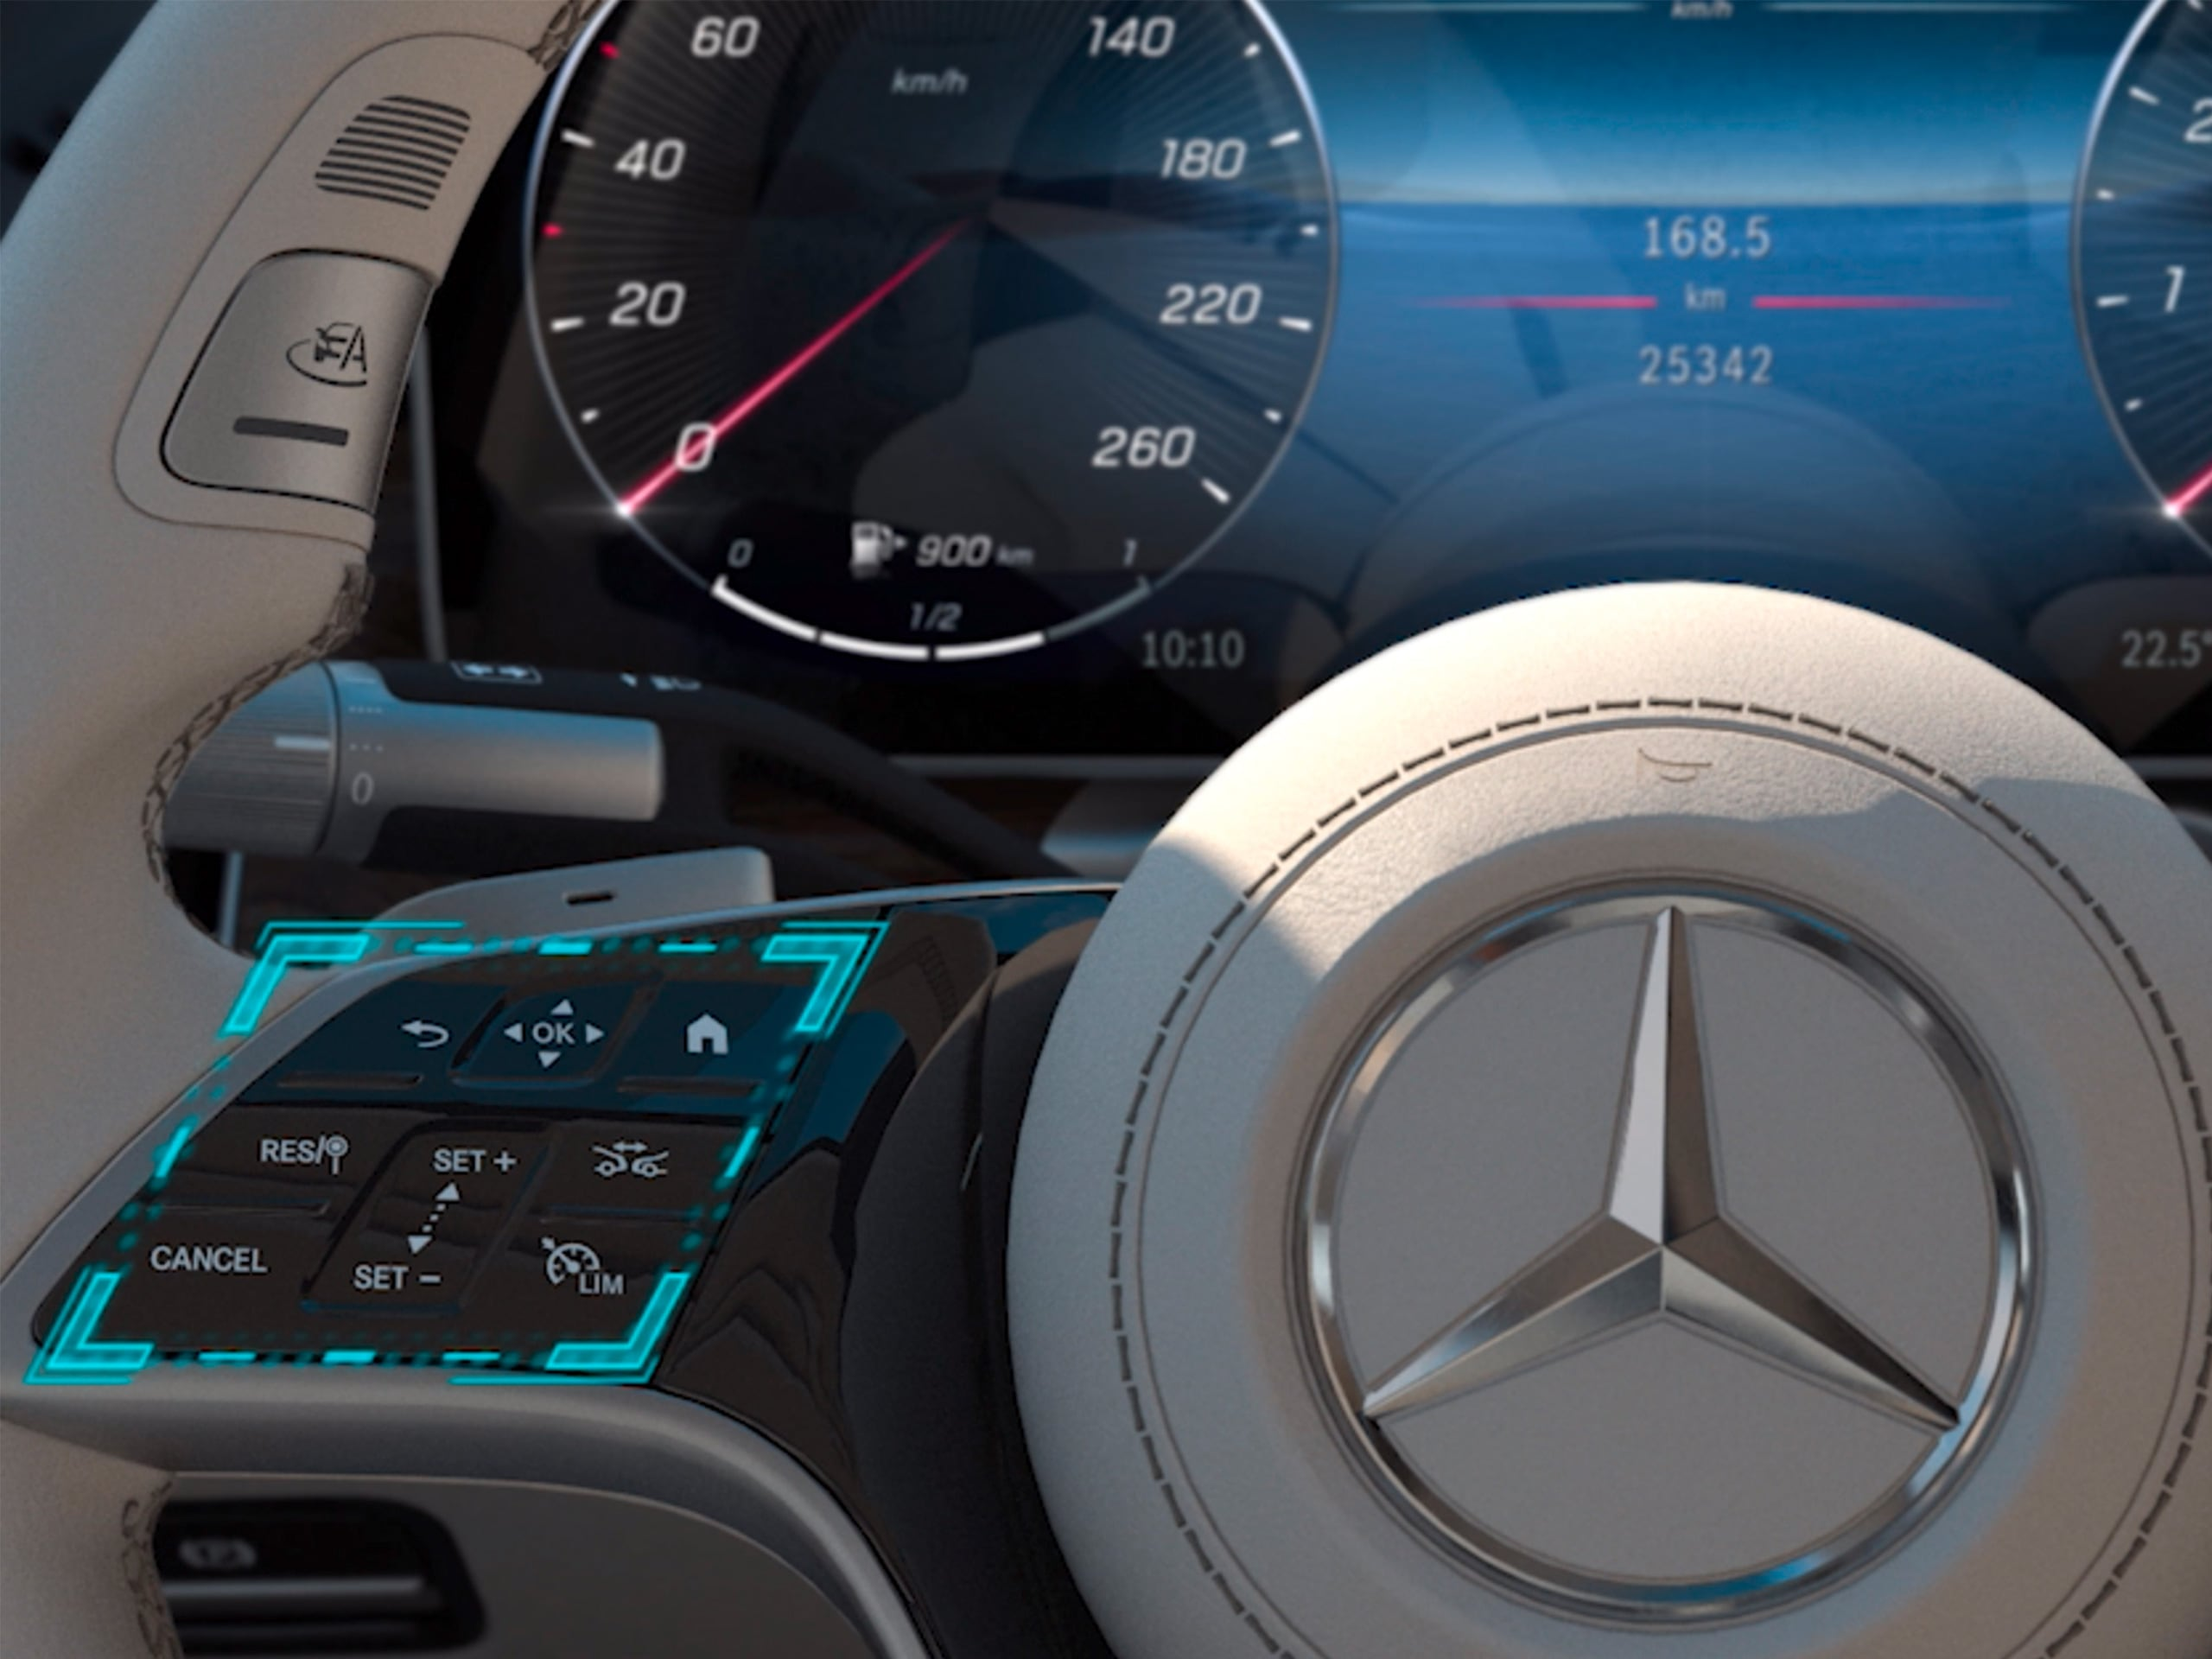 De video toont de werking van het MBUX-touchbedieningsconcept in de Mercedes-Benz C-Klasse Limousine.